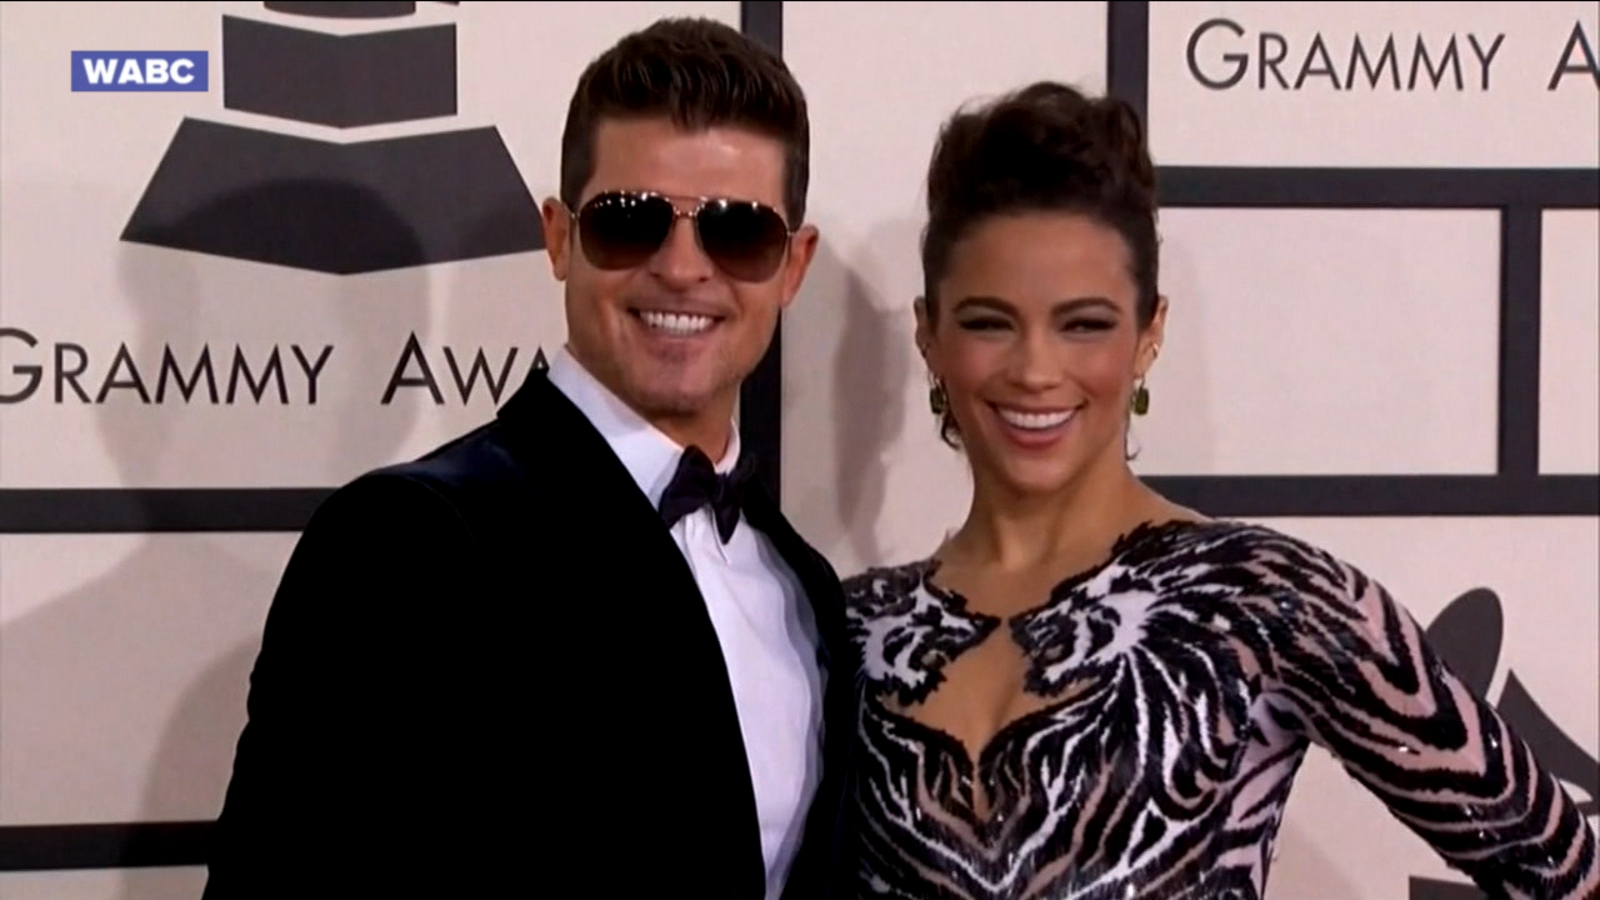 Robin thicke videos at abc news video archive at abcnews an nvjuhfo Image collections